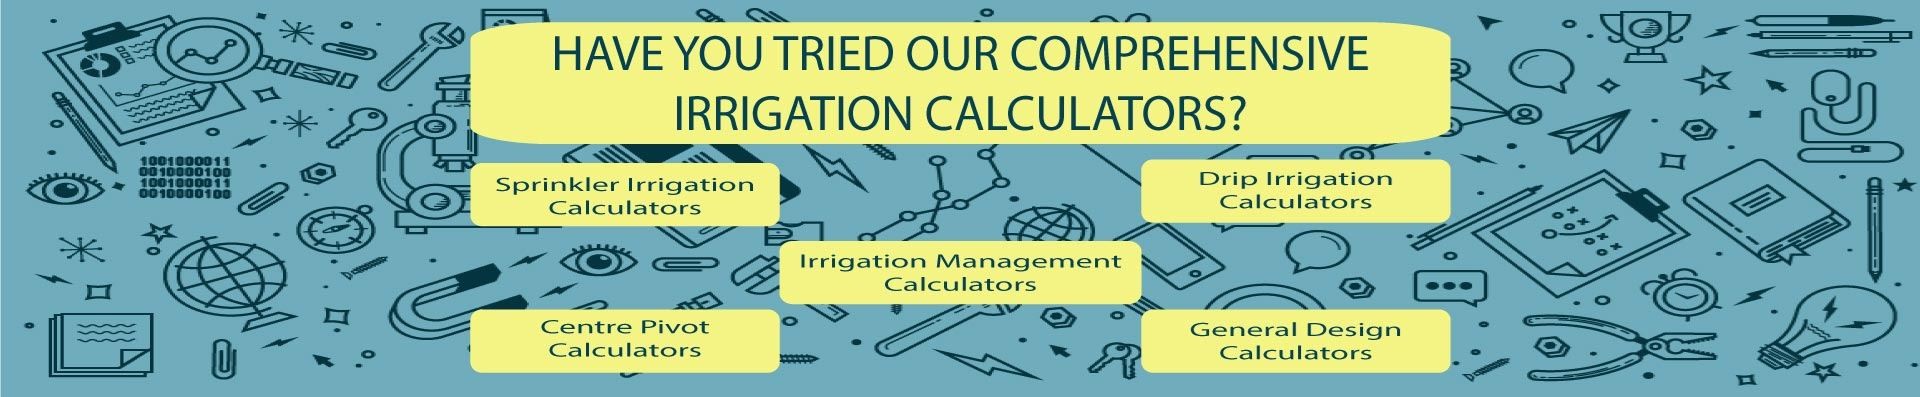 Comprehensive irrigation calculators